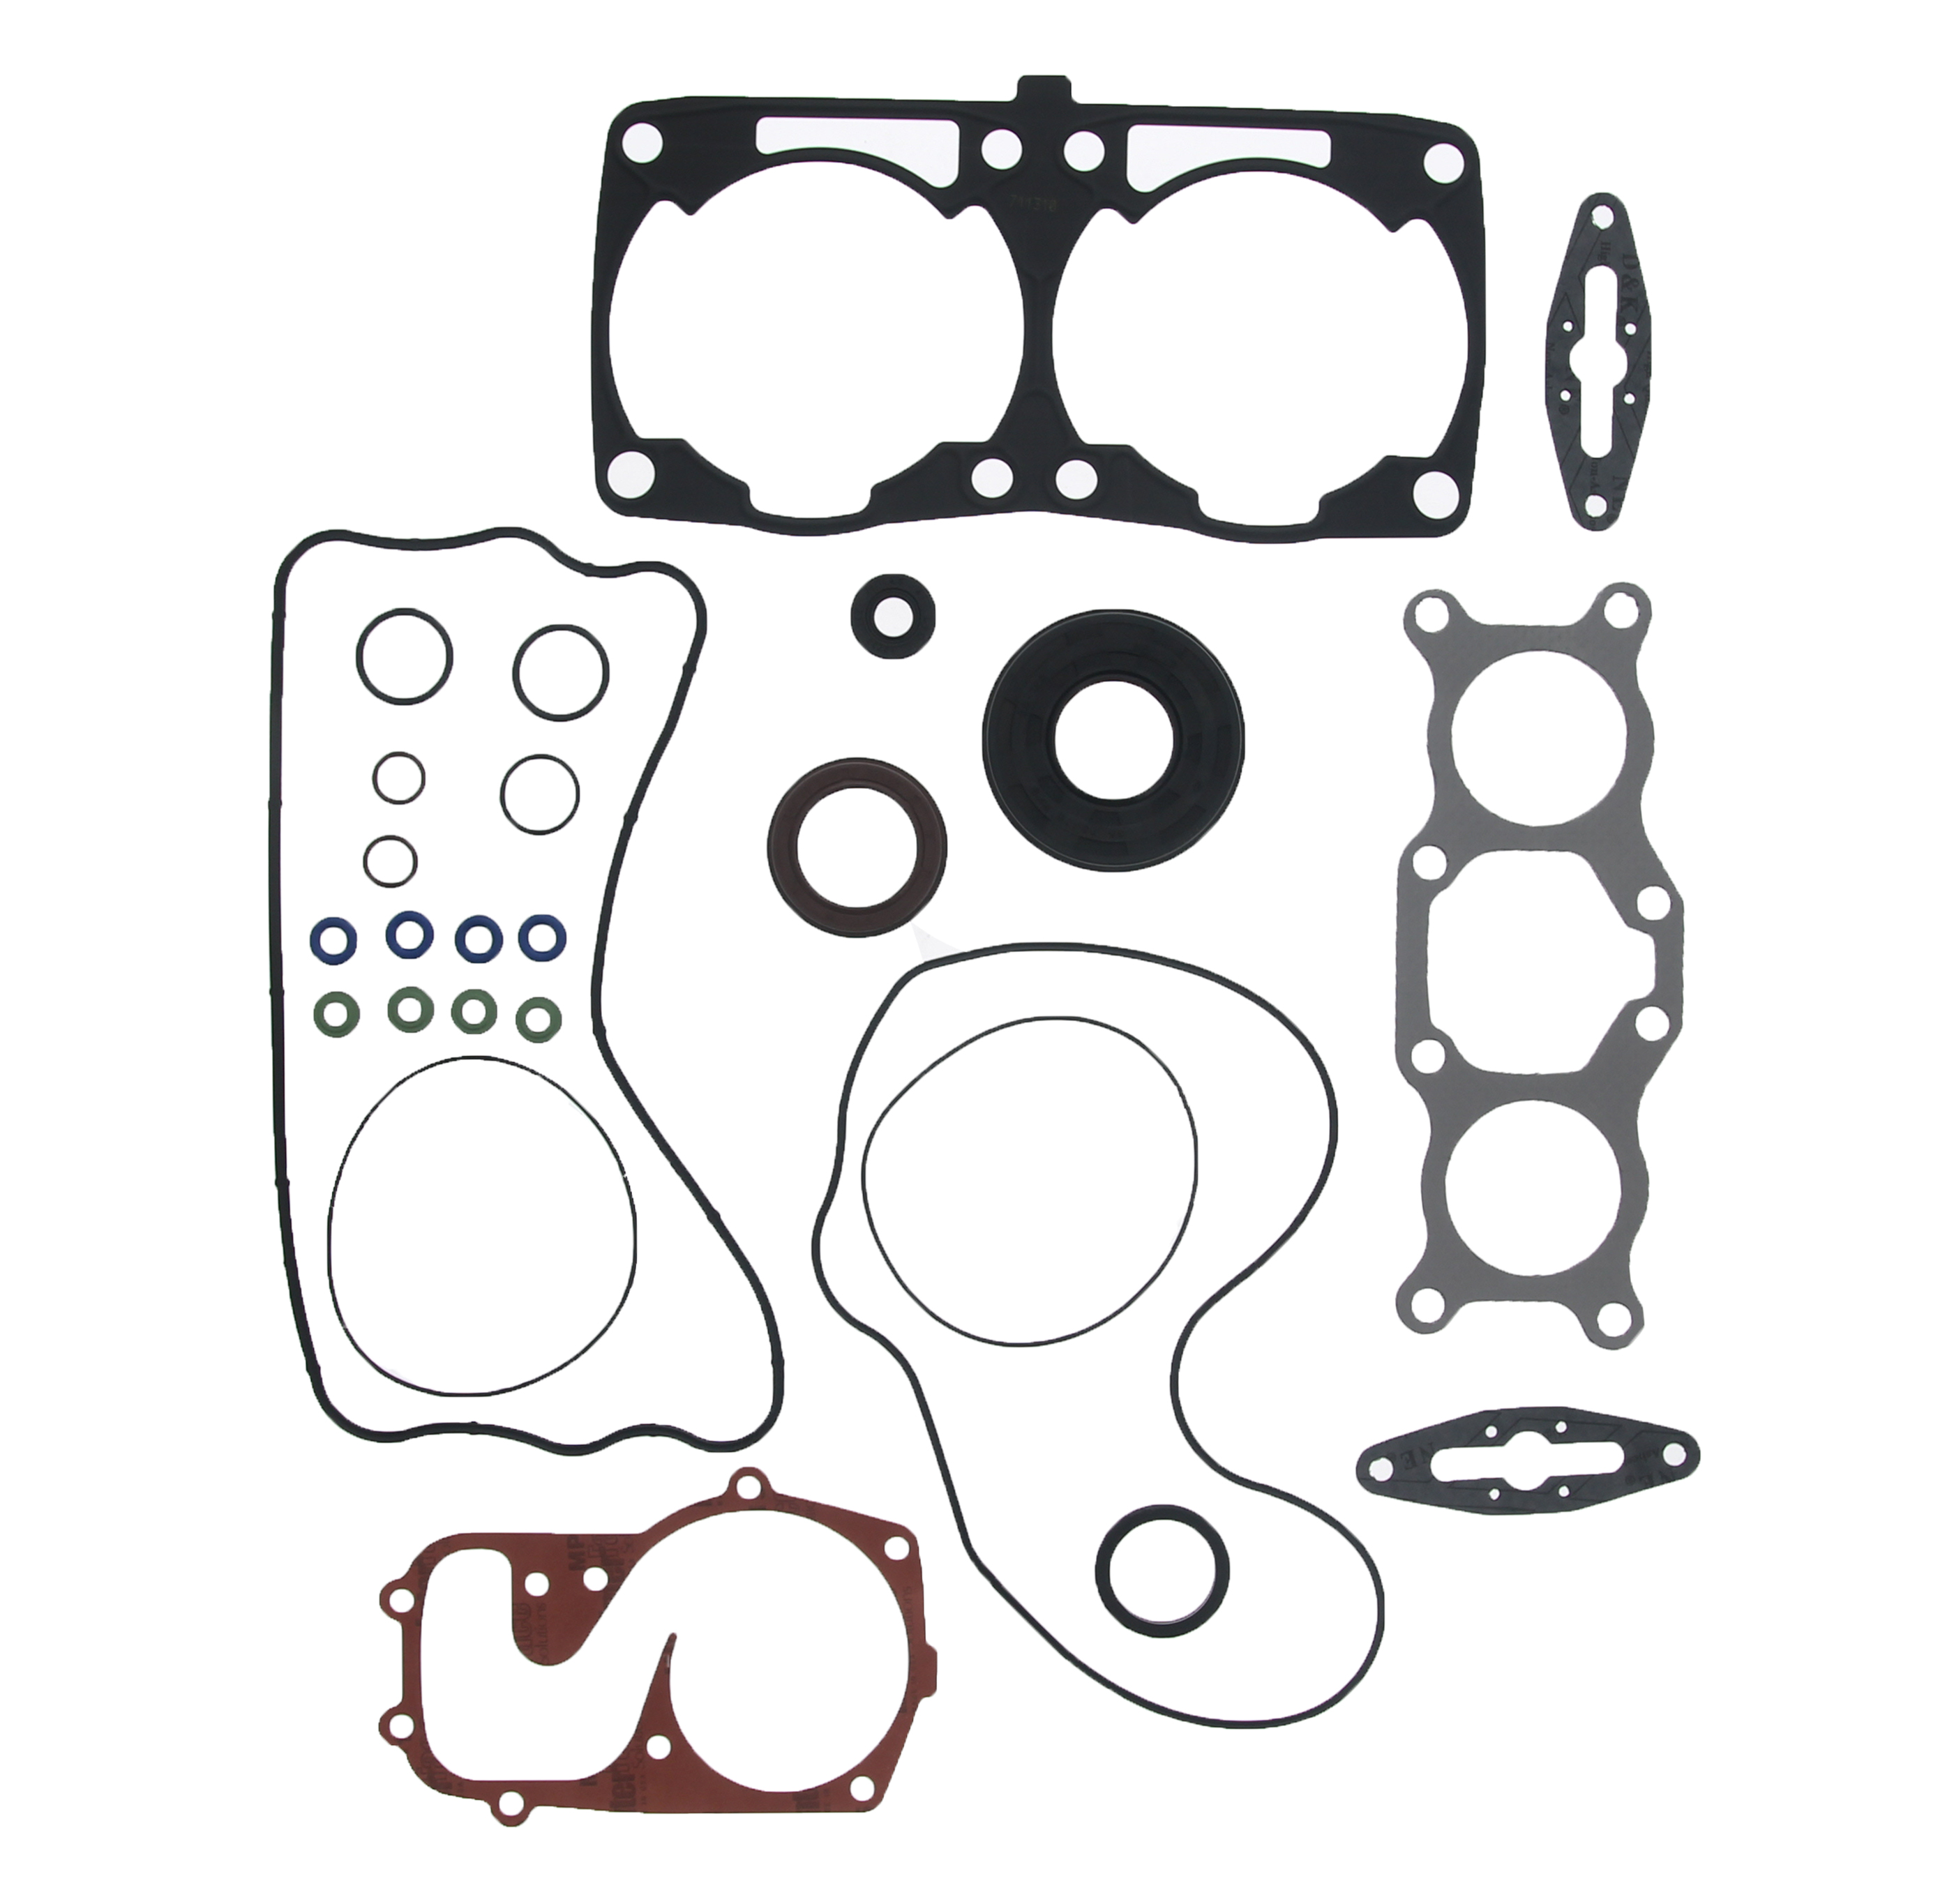 Complete Gasket Kit fits Polaris RMK Assault 800 2011 2012